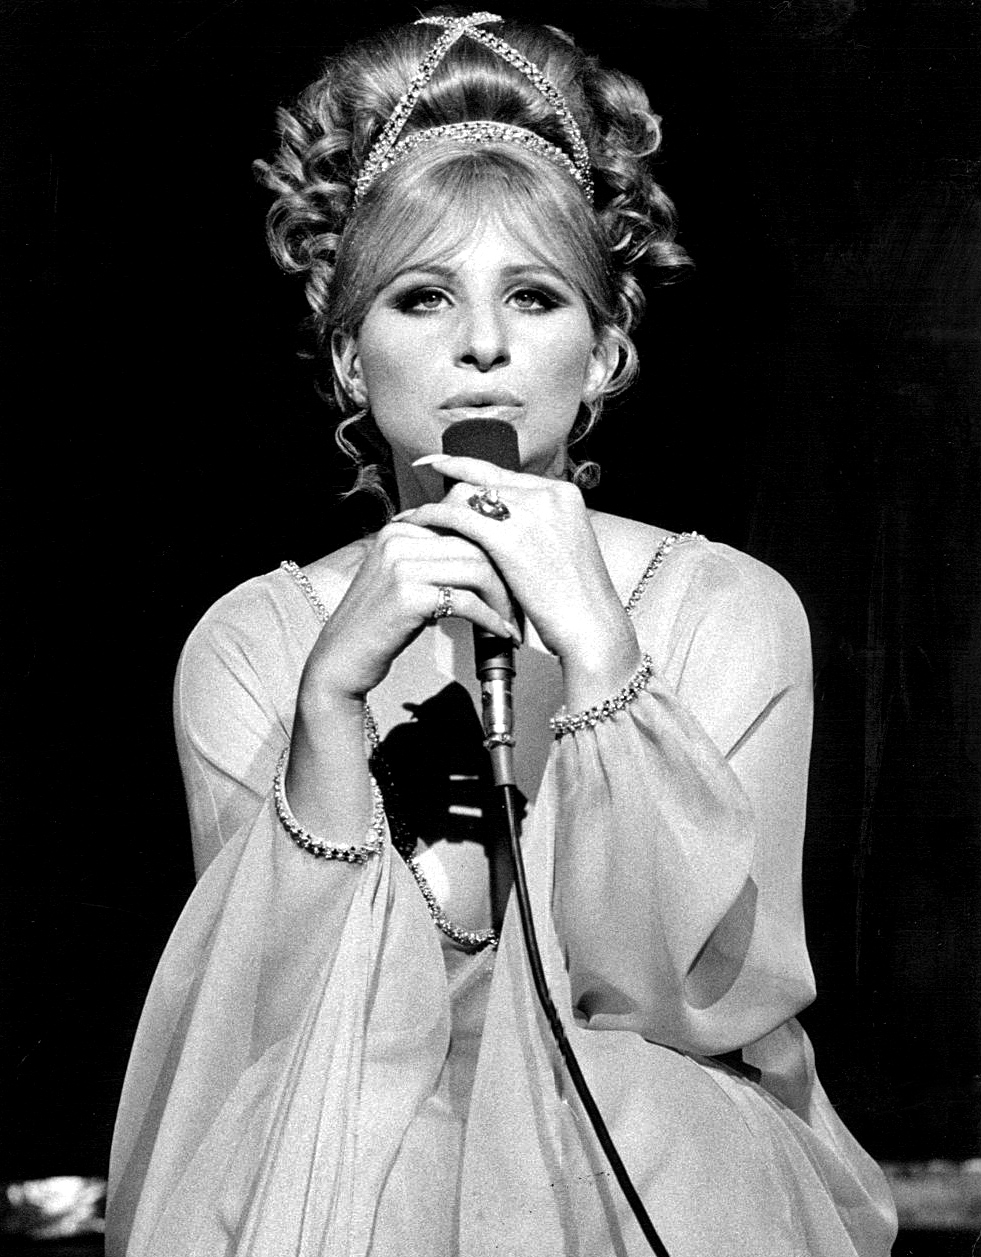 barbra streisand - photo #43